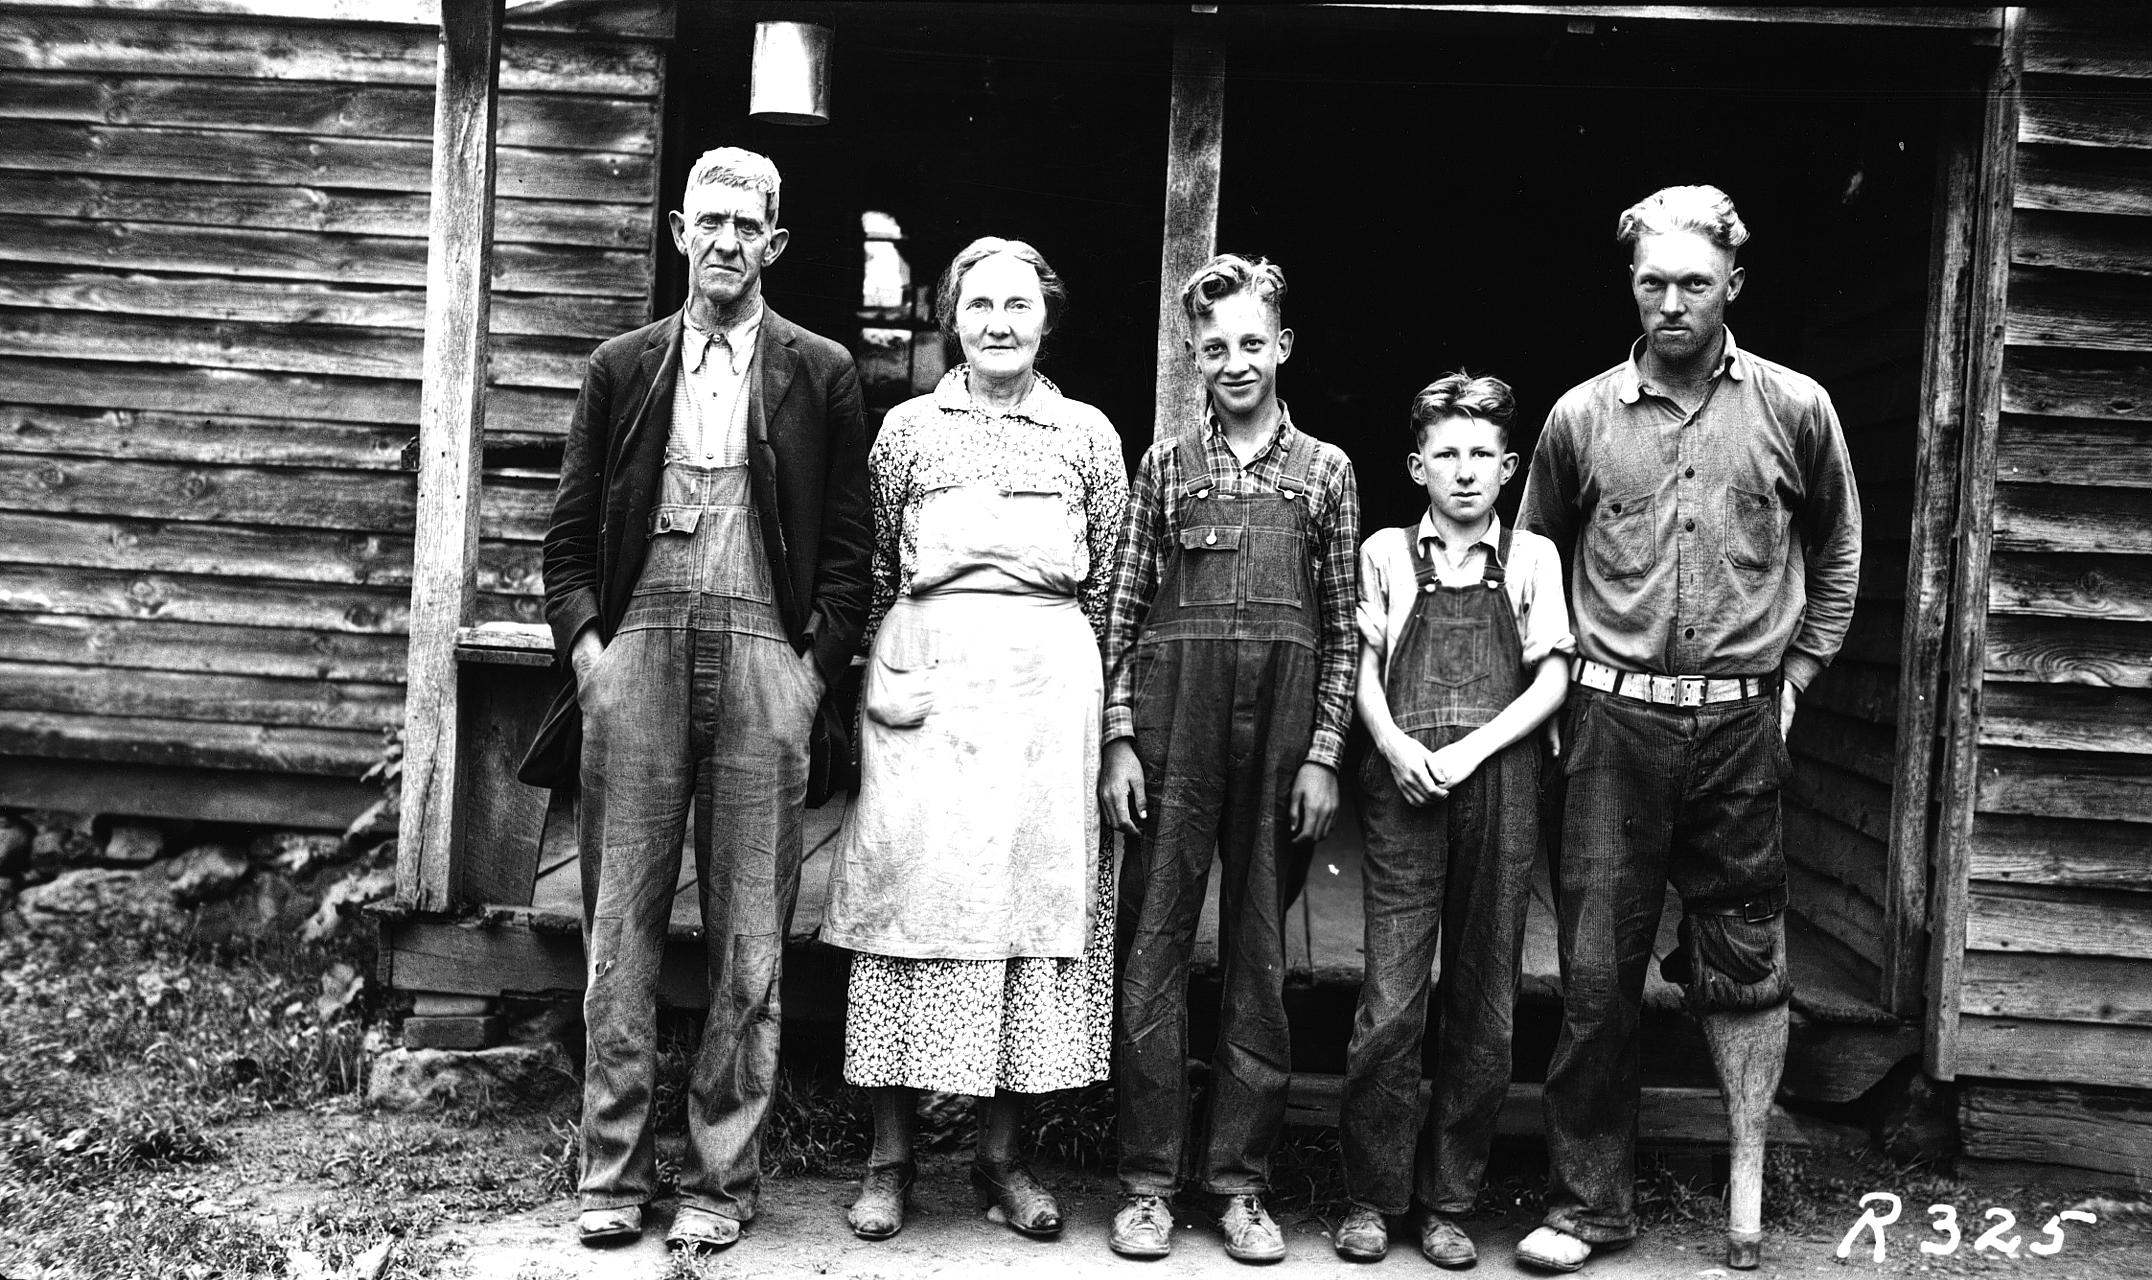 The Thomas family, residents of the mountain land before the park was established. (From left) Jim, Becky, Mark, Floyd, and Lester Thomas. Photo: Shenandoah National Park